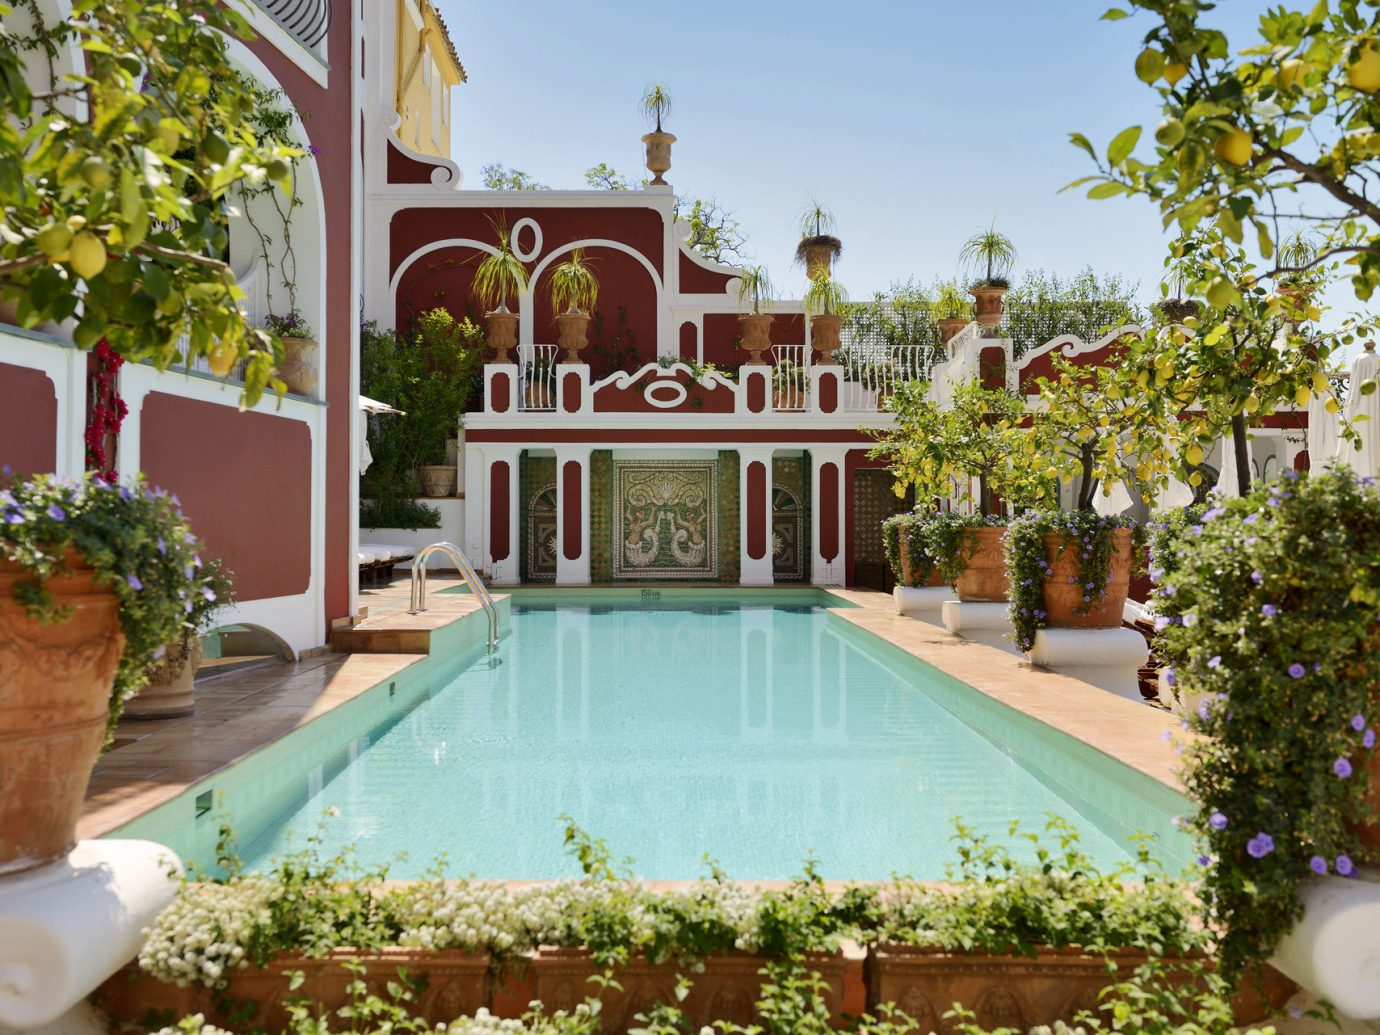 calm charming europe Greenery Hotels Jetsetter Guides Luxury outdoor pool Pool quaint remote serene summer tree outdoor property estate swimming pool mansion home Villa hacienda backyard Resort Courtyard palace real estate Garden